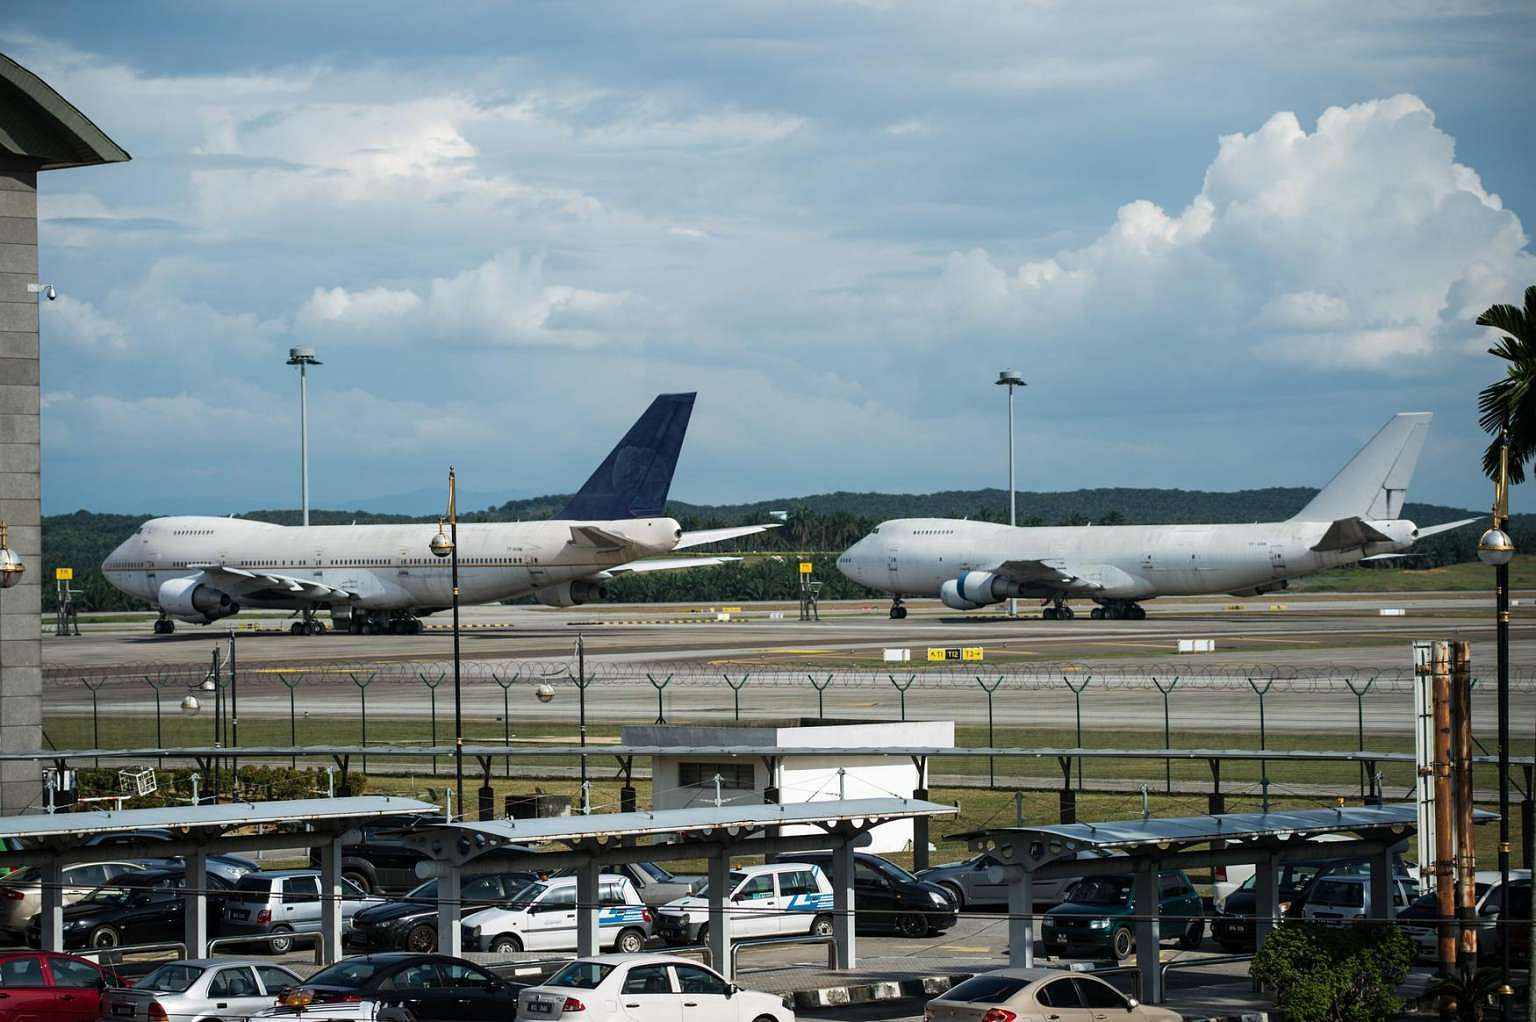 White apron malaysia -  Last Call For Owner Of 3 Abandoned Planes Malaysia Airports Seeks Owner Of Boeing 747s Left At Klia Se Asia News Top Stories The Straits Times